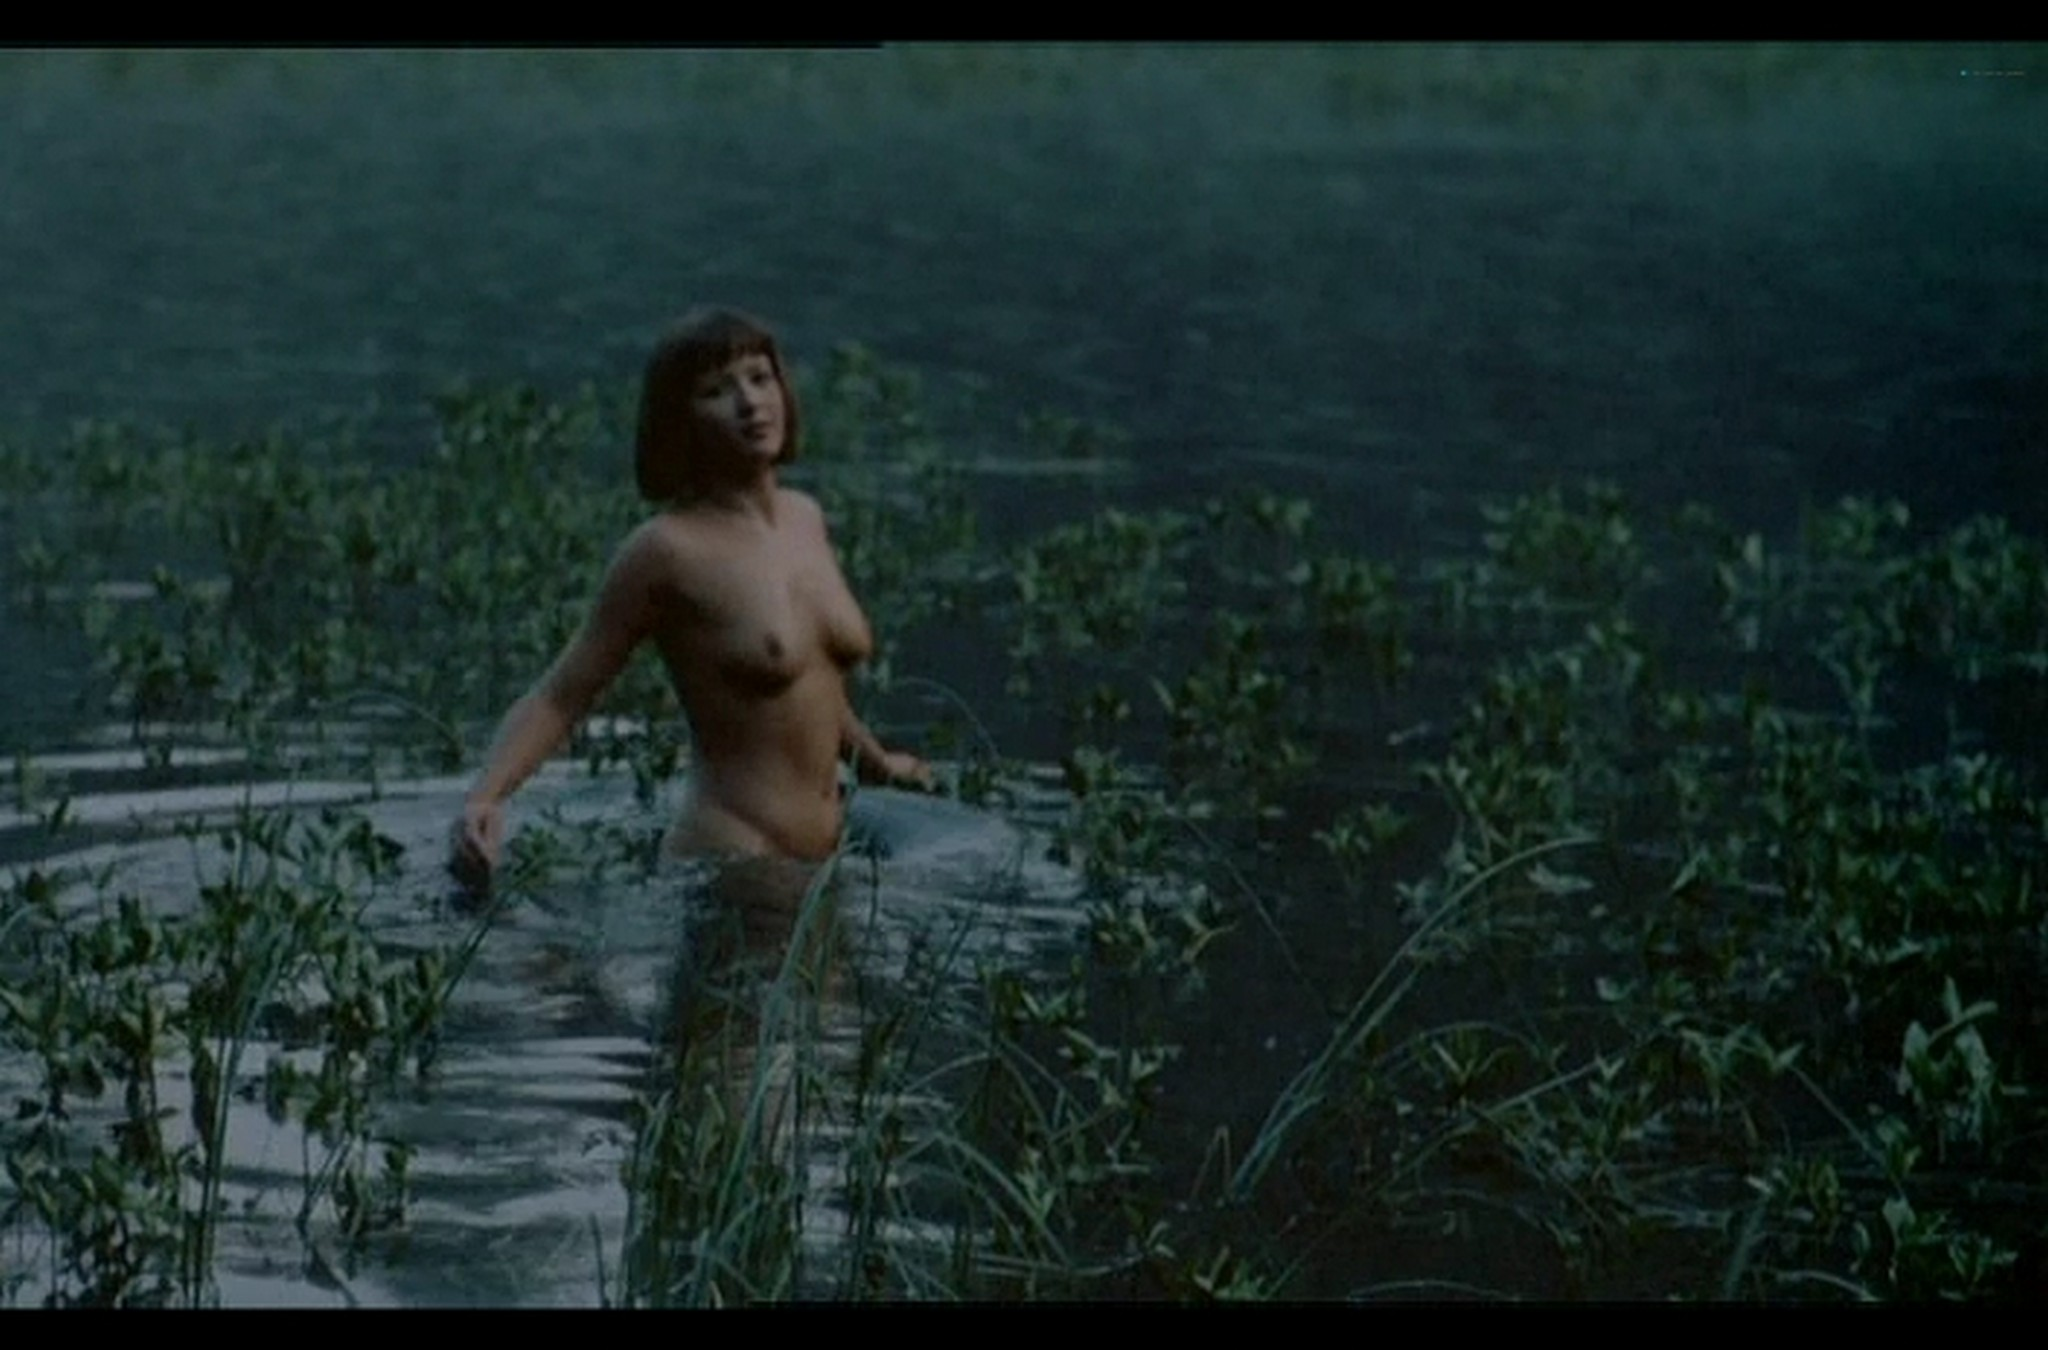 Sophie Marceau nude full frontal Christiane Jean nude too Lamour braque FR 1985 DvDrip 017